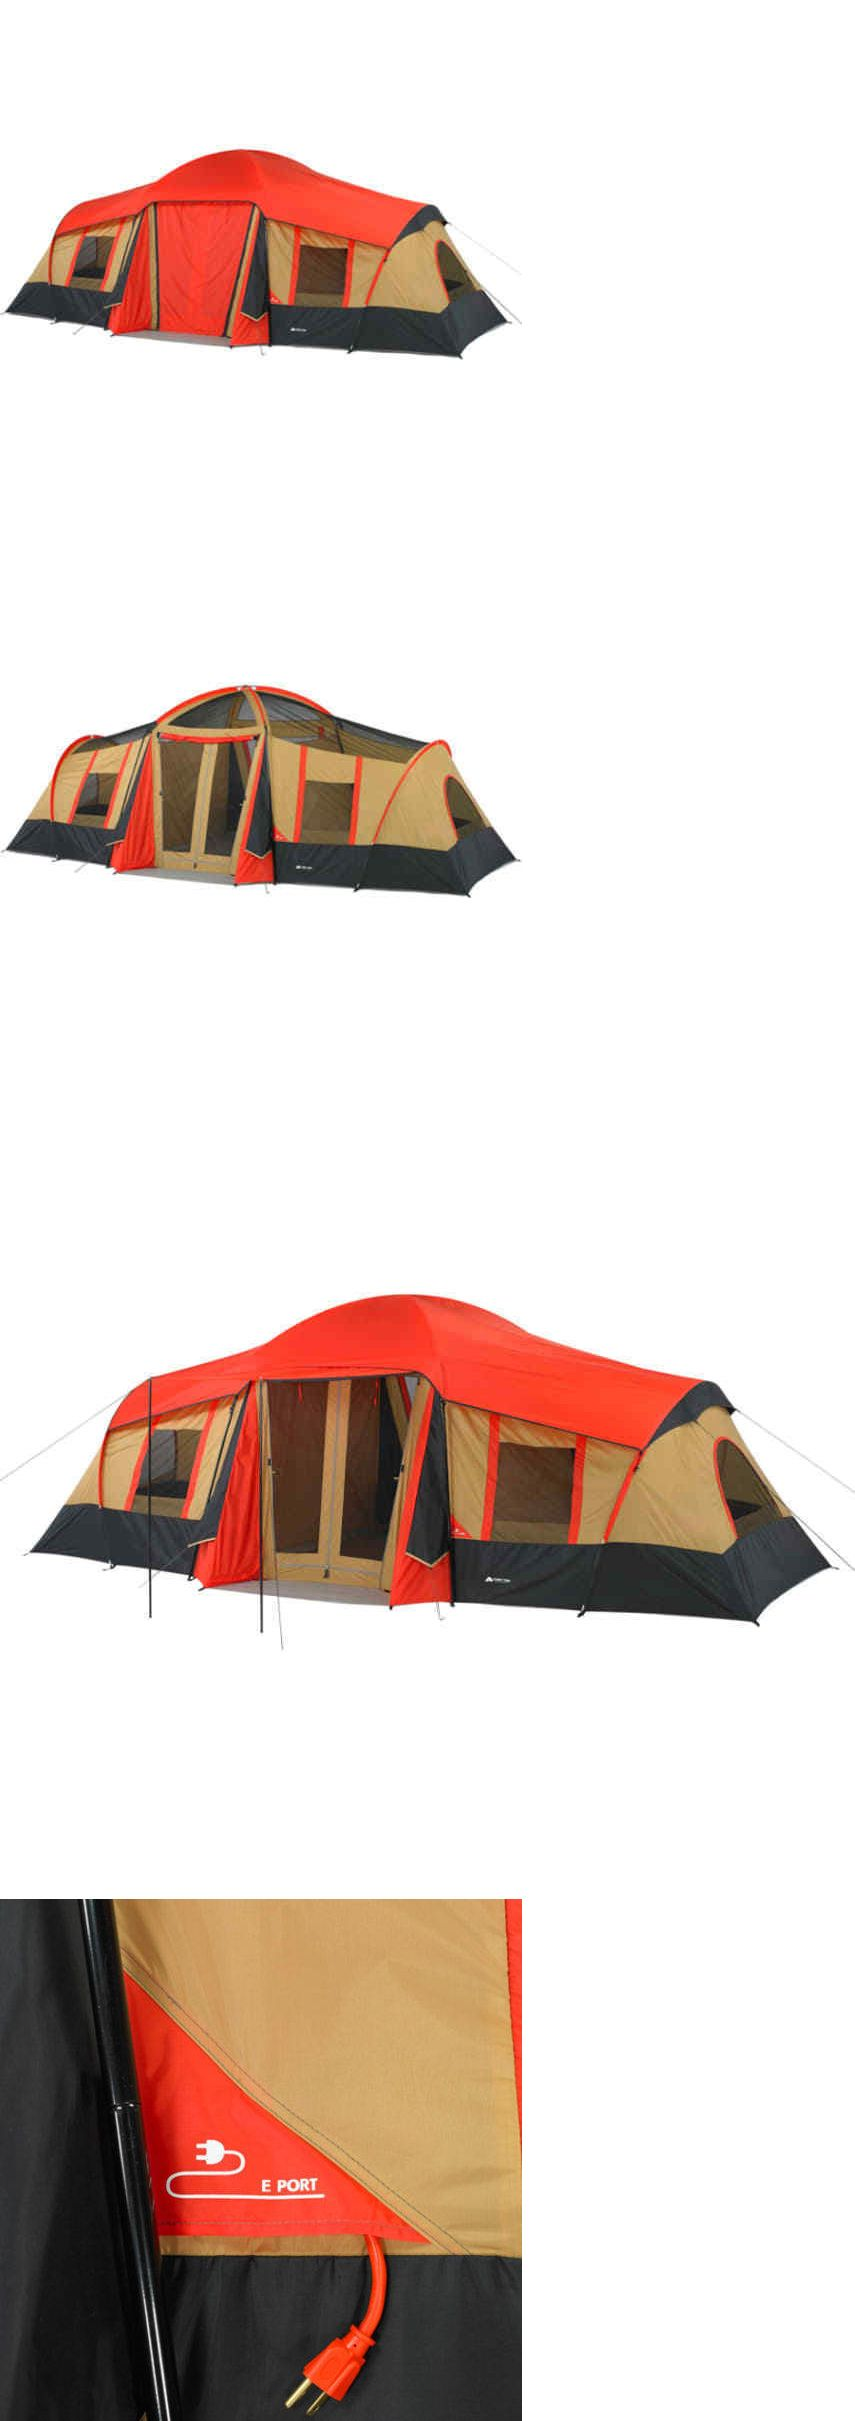 f7f19917e8 Tente 10-Person 3-Room Vacation Tent Ozark Trail with Built-In Mud Mat  Shade Awning